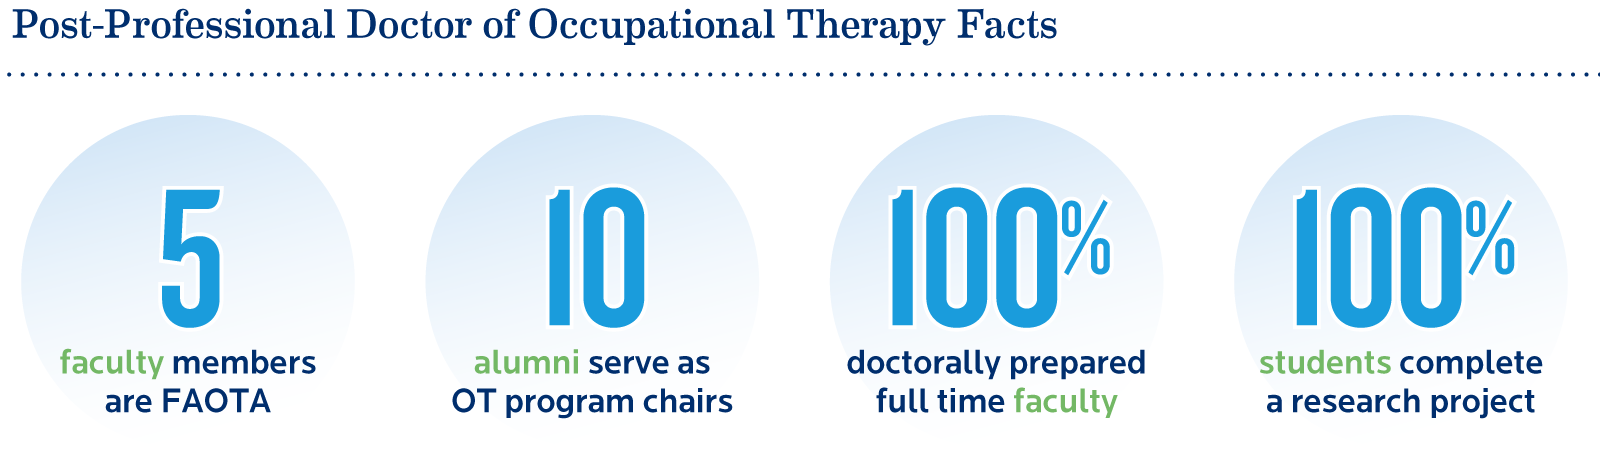 Doctor of Occupational Therapy Facts - 5 faculty members are FAOTA; 10 alumni serve as Occupational Therapy program chairs; 100% of full-time faculty are doctorally prepared; 100% of occupational therapy students complete a research project.